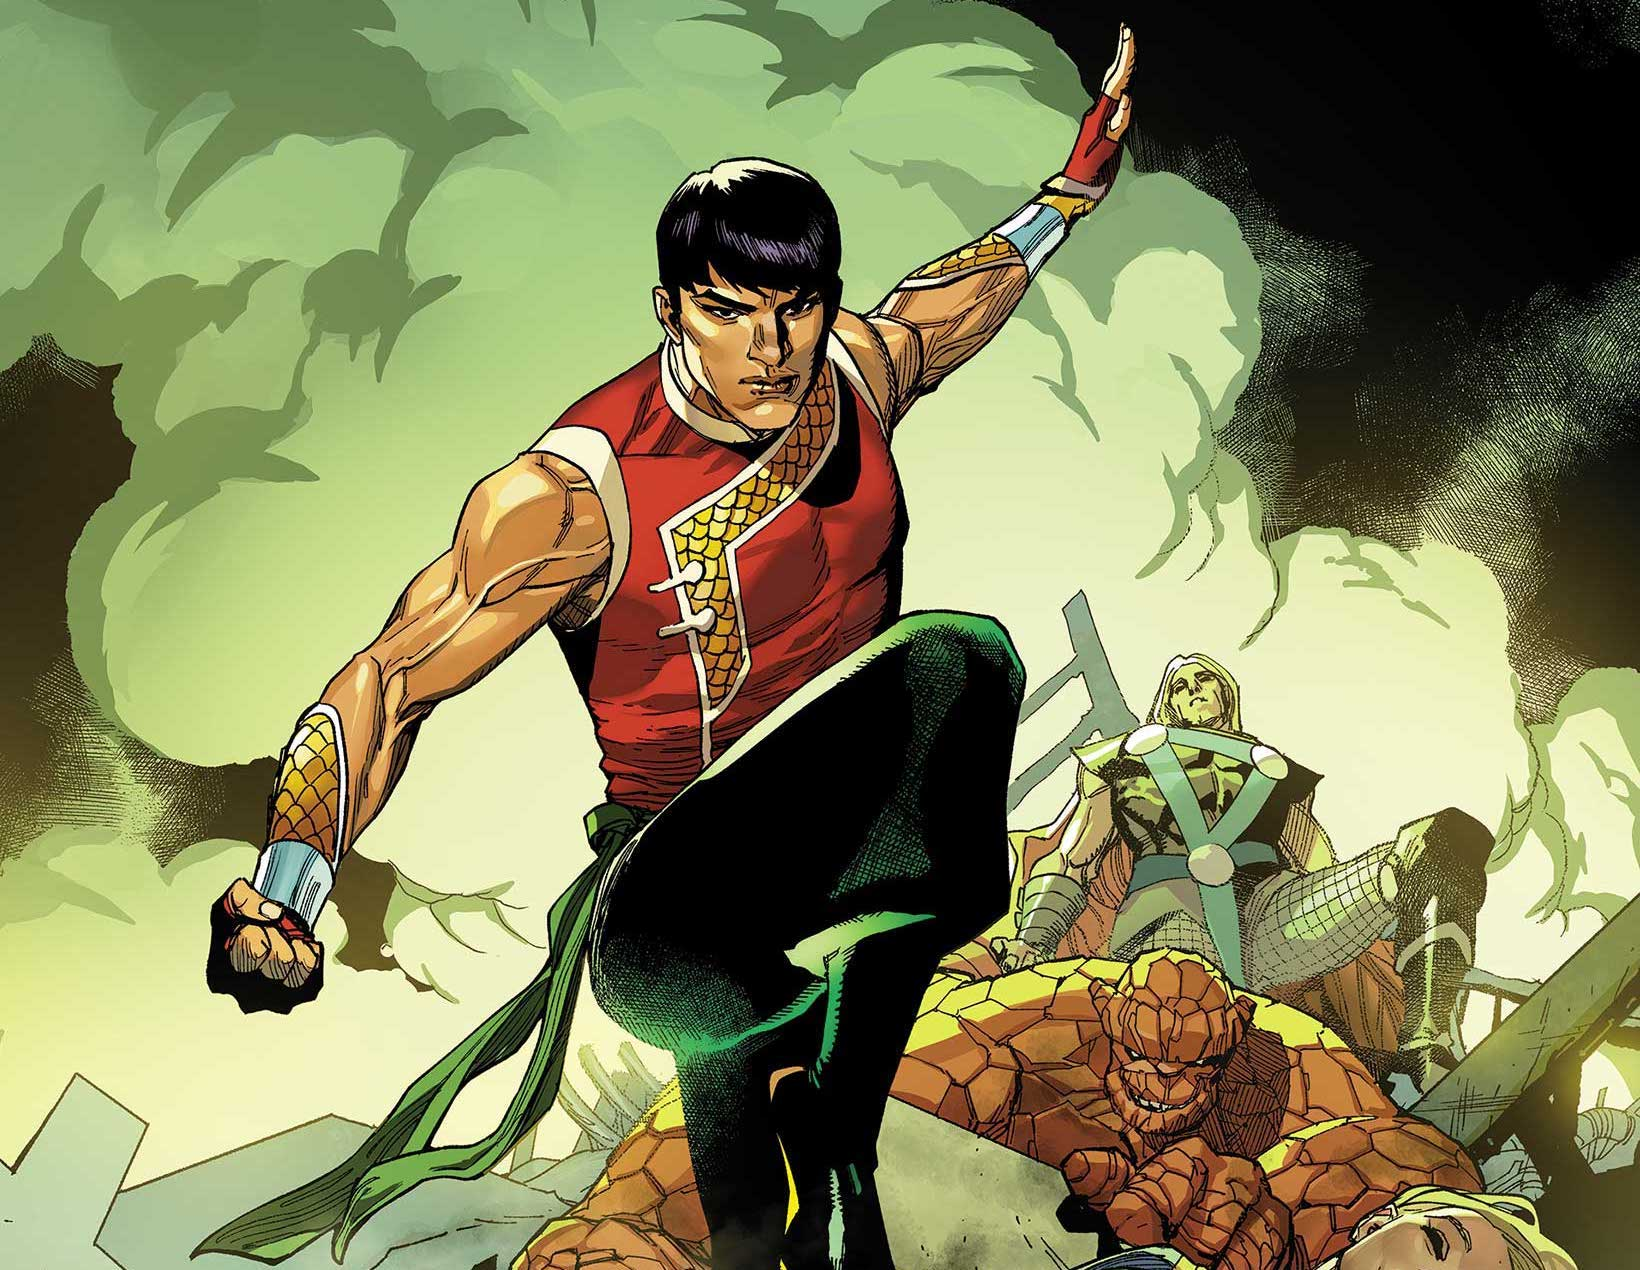 'Shang-Chi' #1 offers an exciting, must-read take on the character